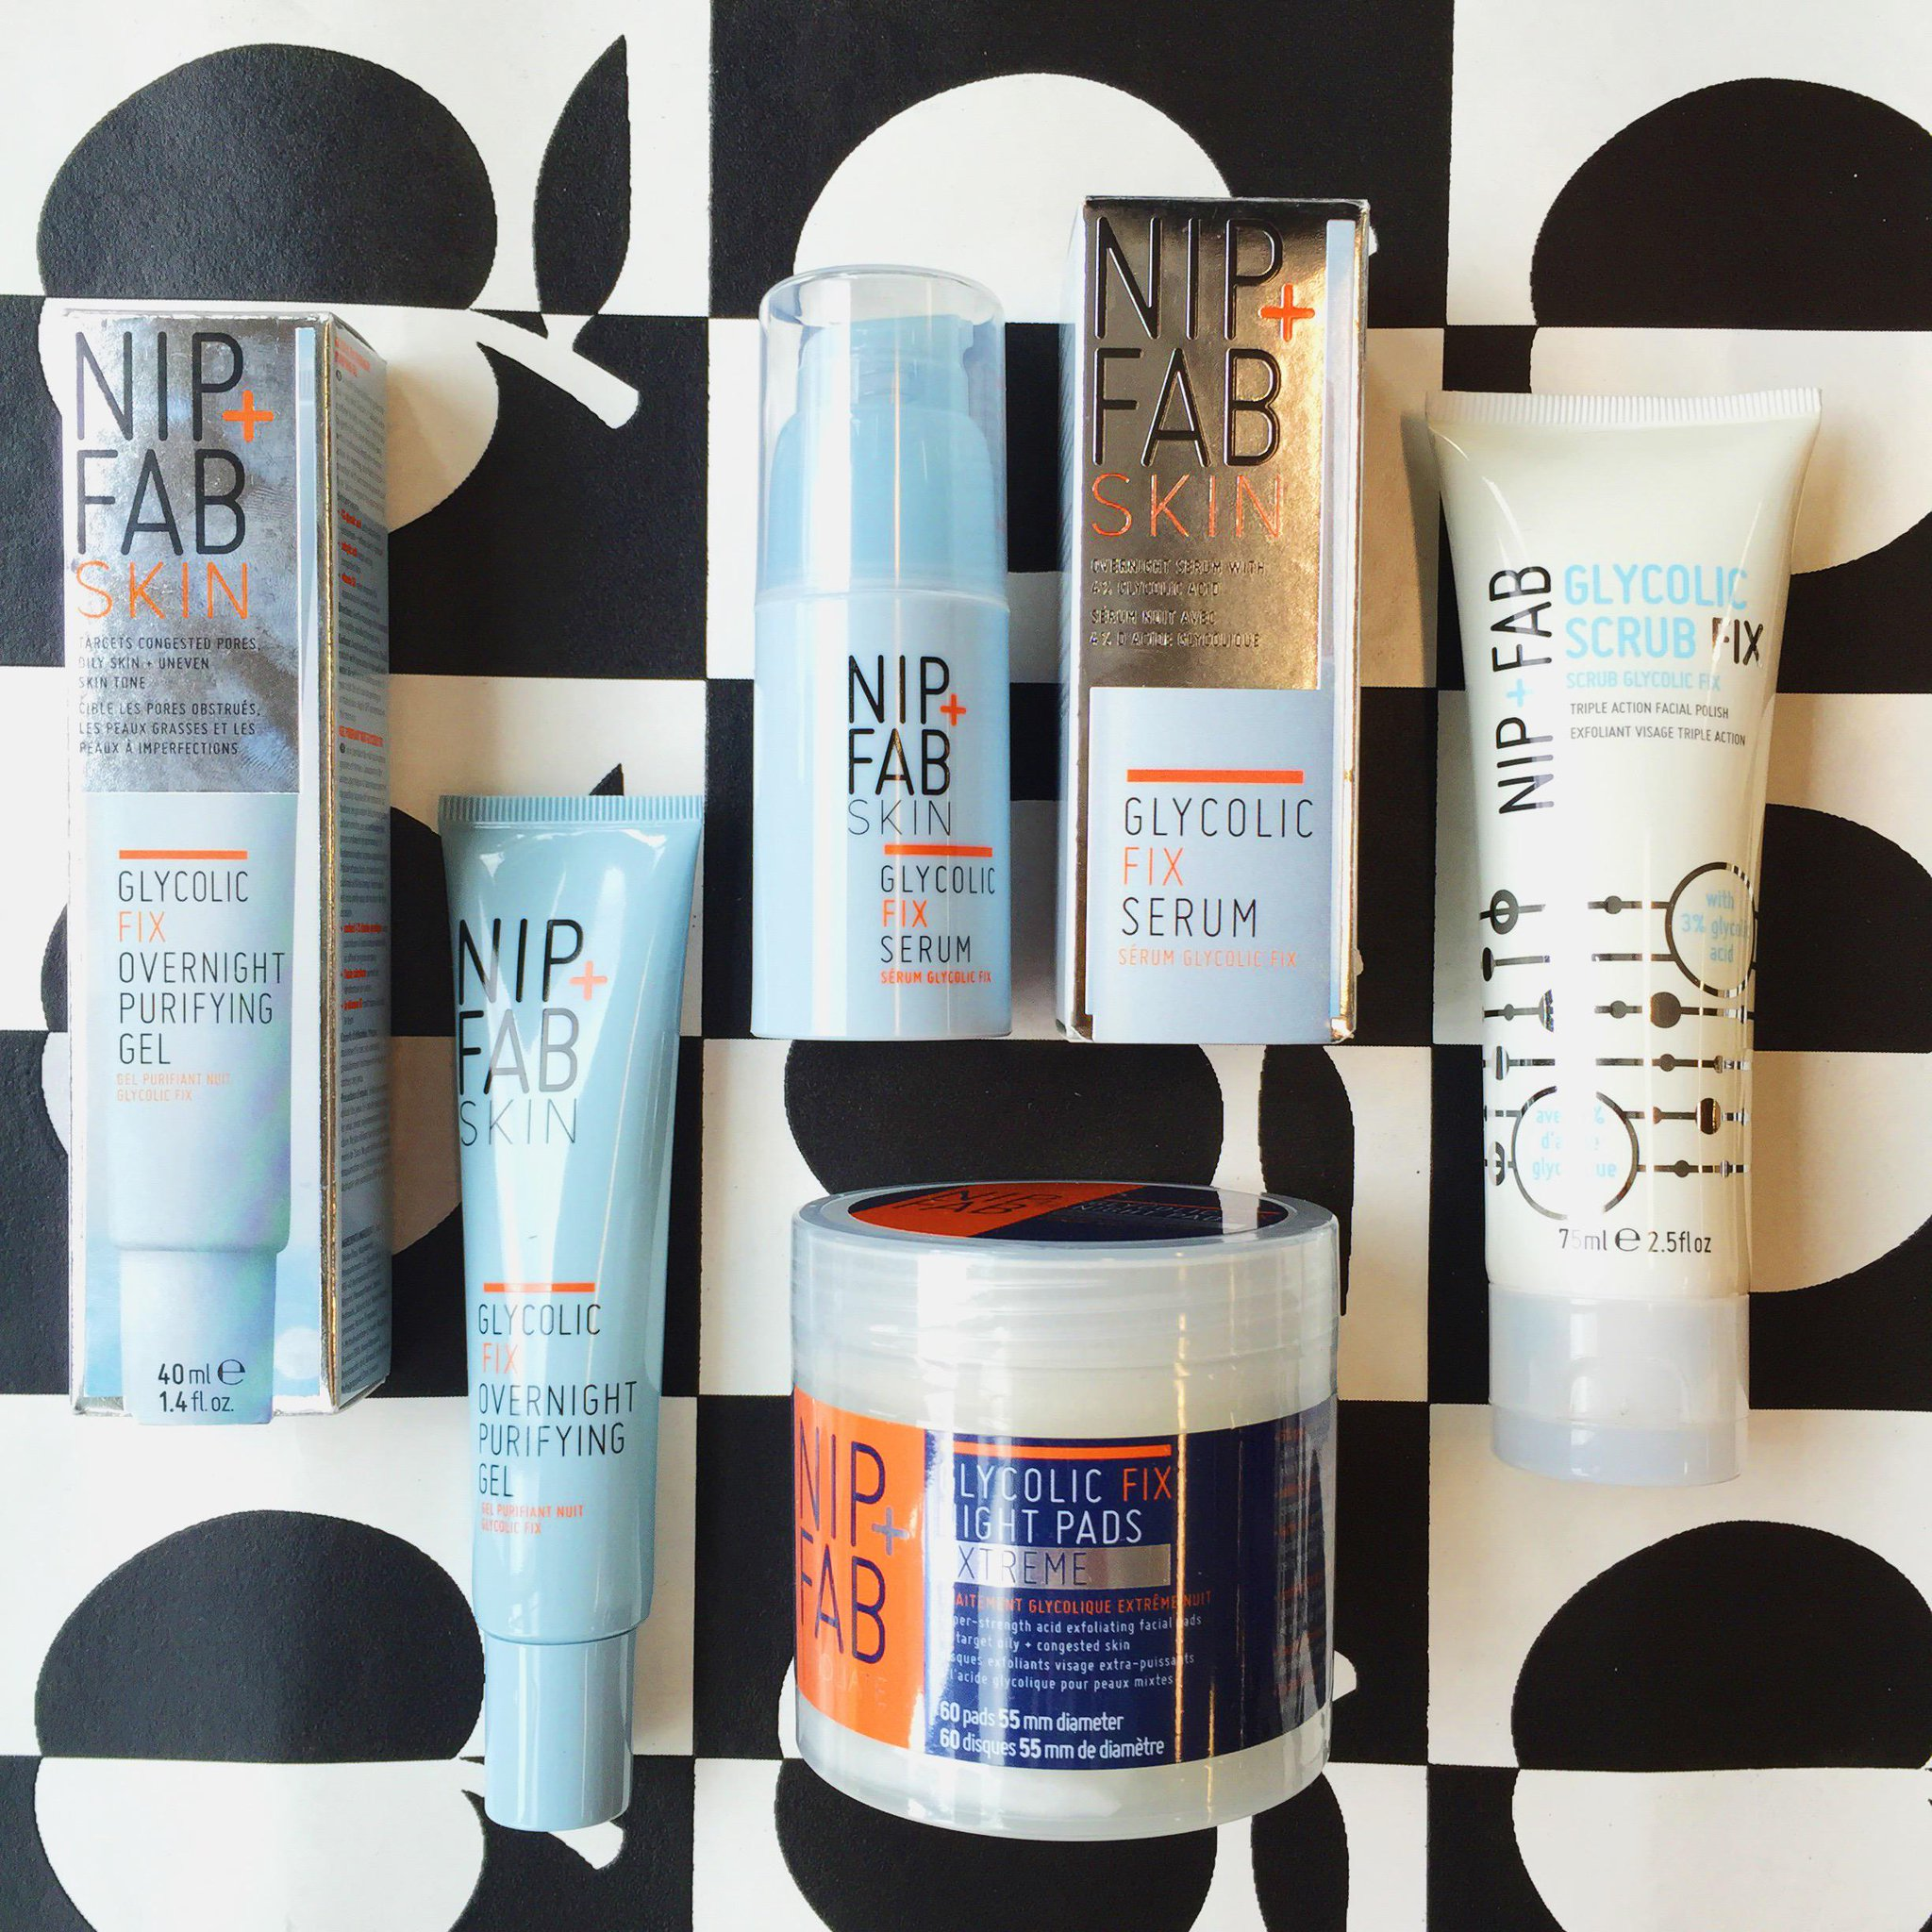 Win £50 worth of @NipandFab goodies with our #InvestInBeauty giveaway! For details visit http://t.co/zEp0et6jIh http://t.co/5fEz54HGcw